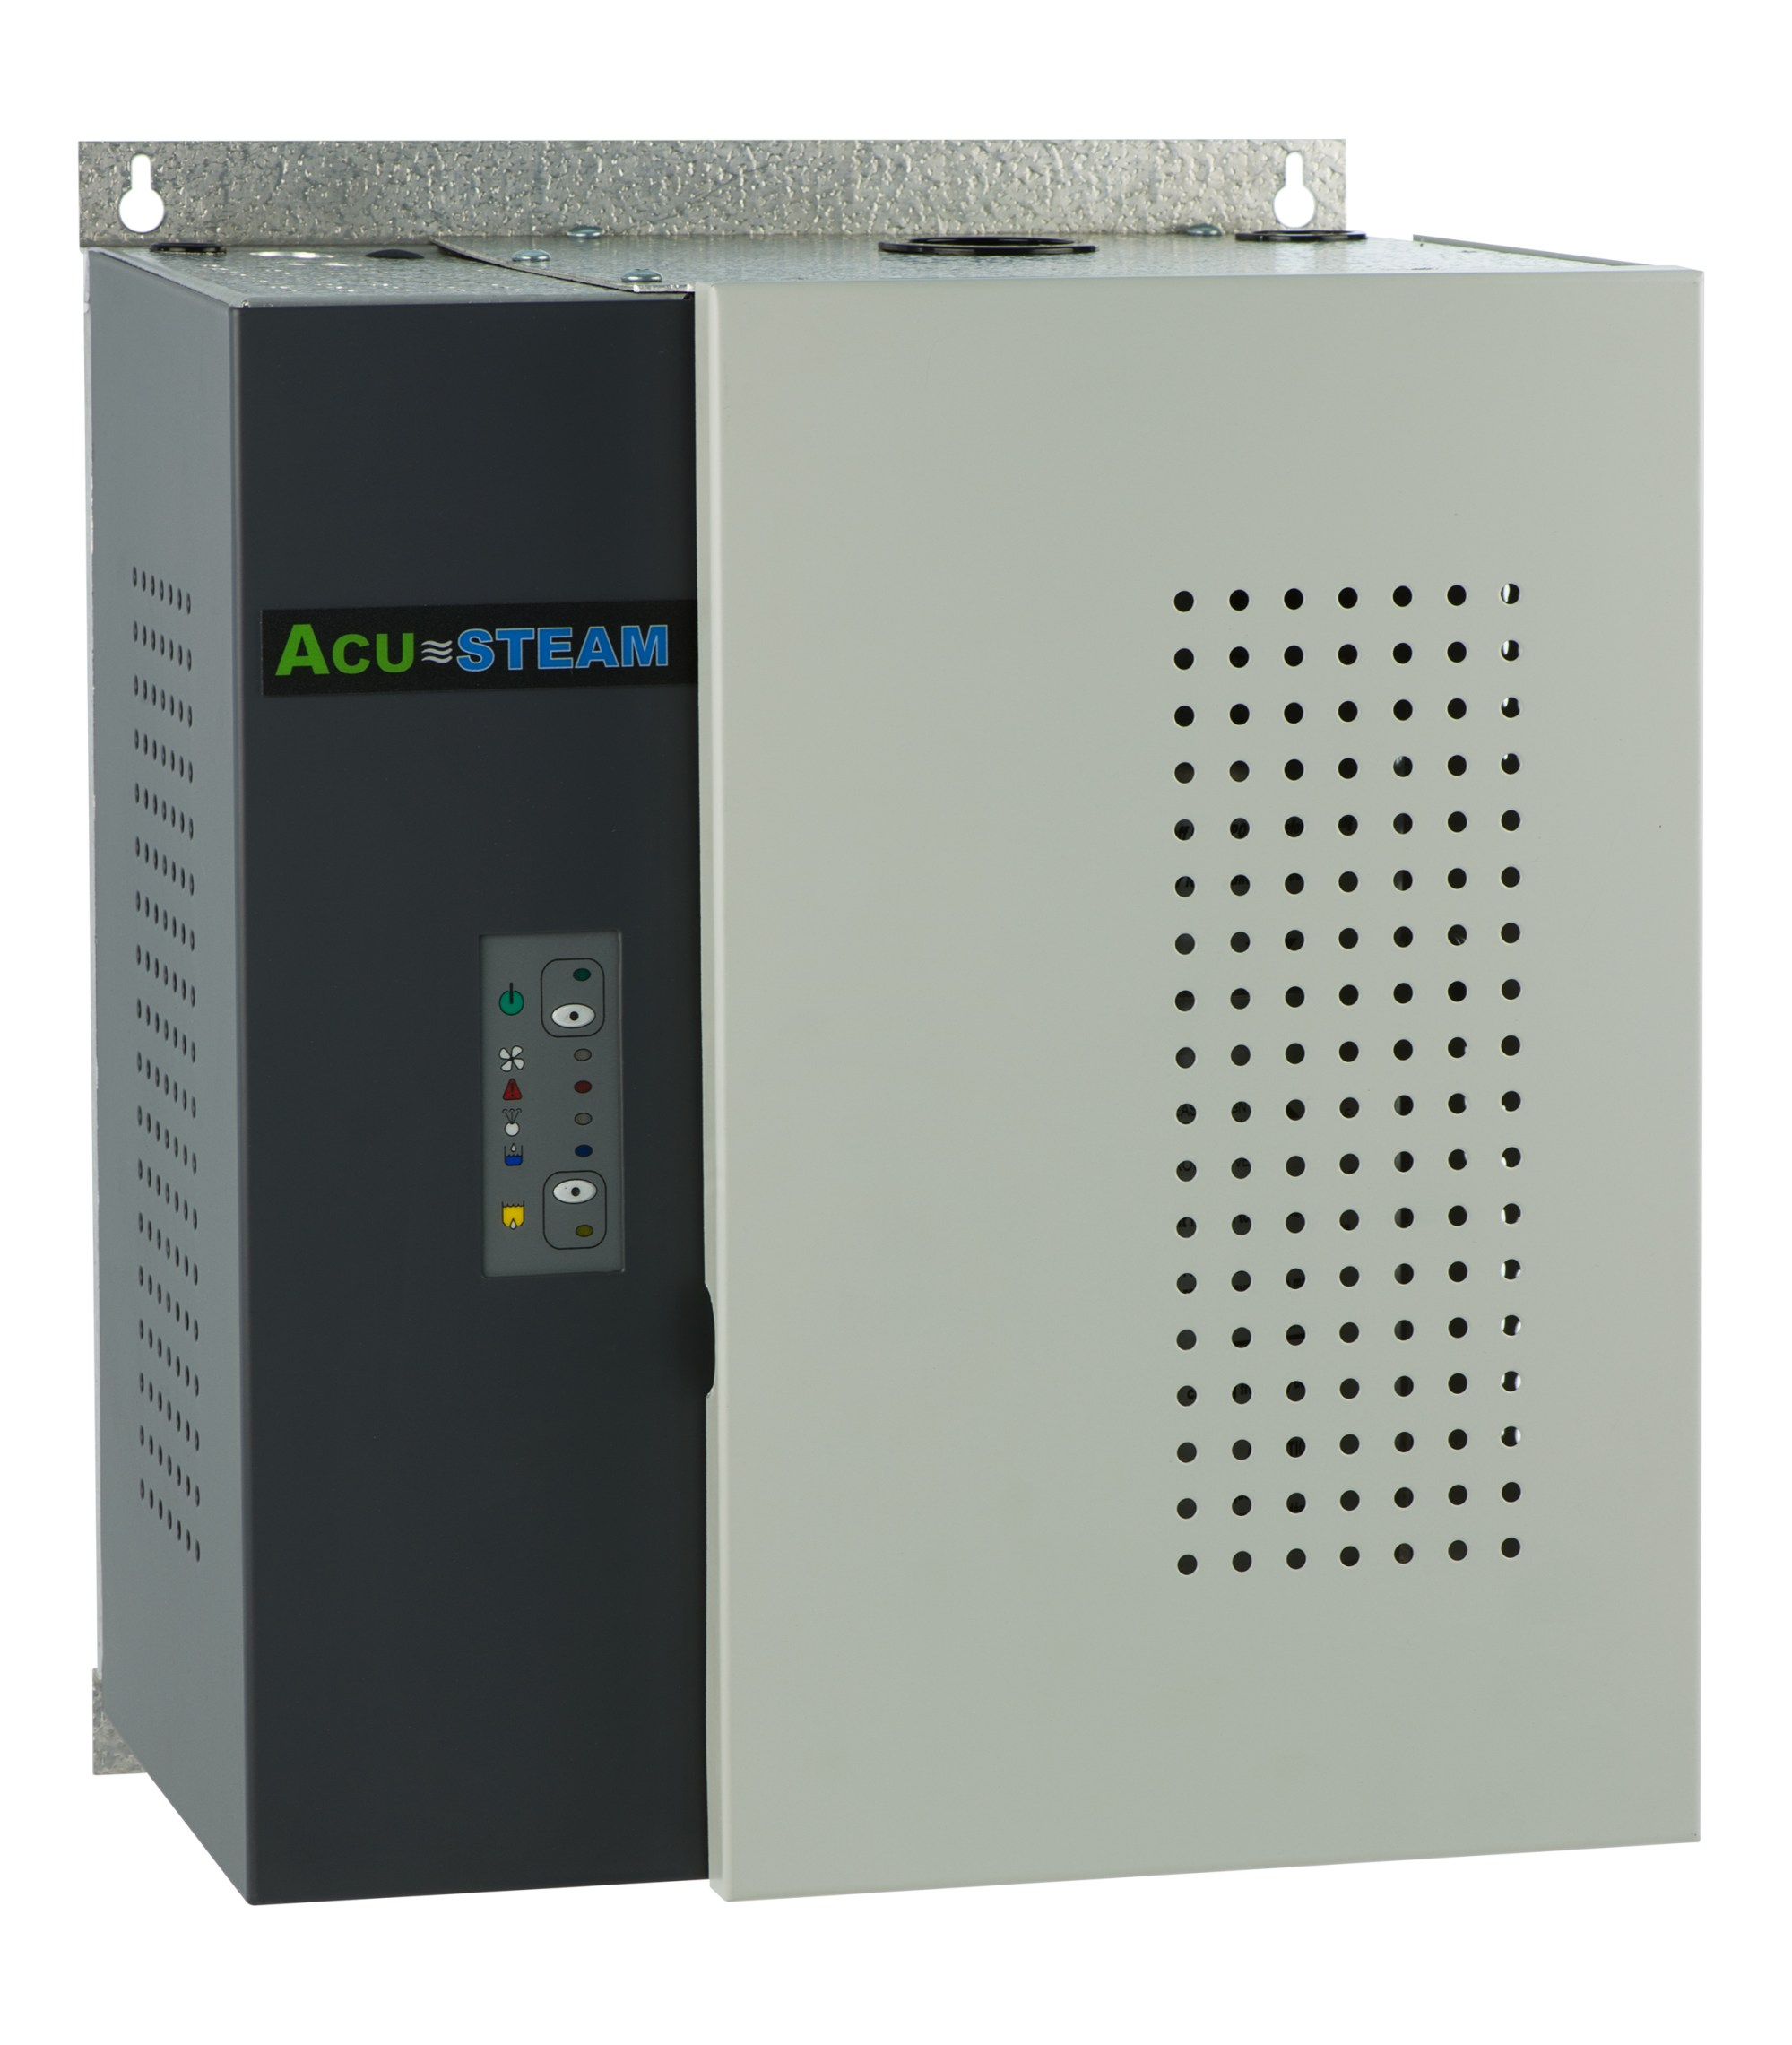 hight resolution of thermolec acu steam humidifiers are the most dependable and easiest tomaintain steam humidifiers on the market acu steam will tolerate a variety ofwater